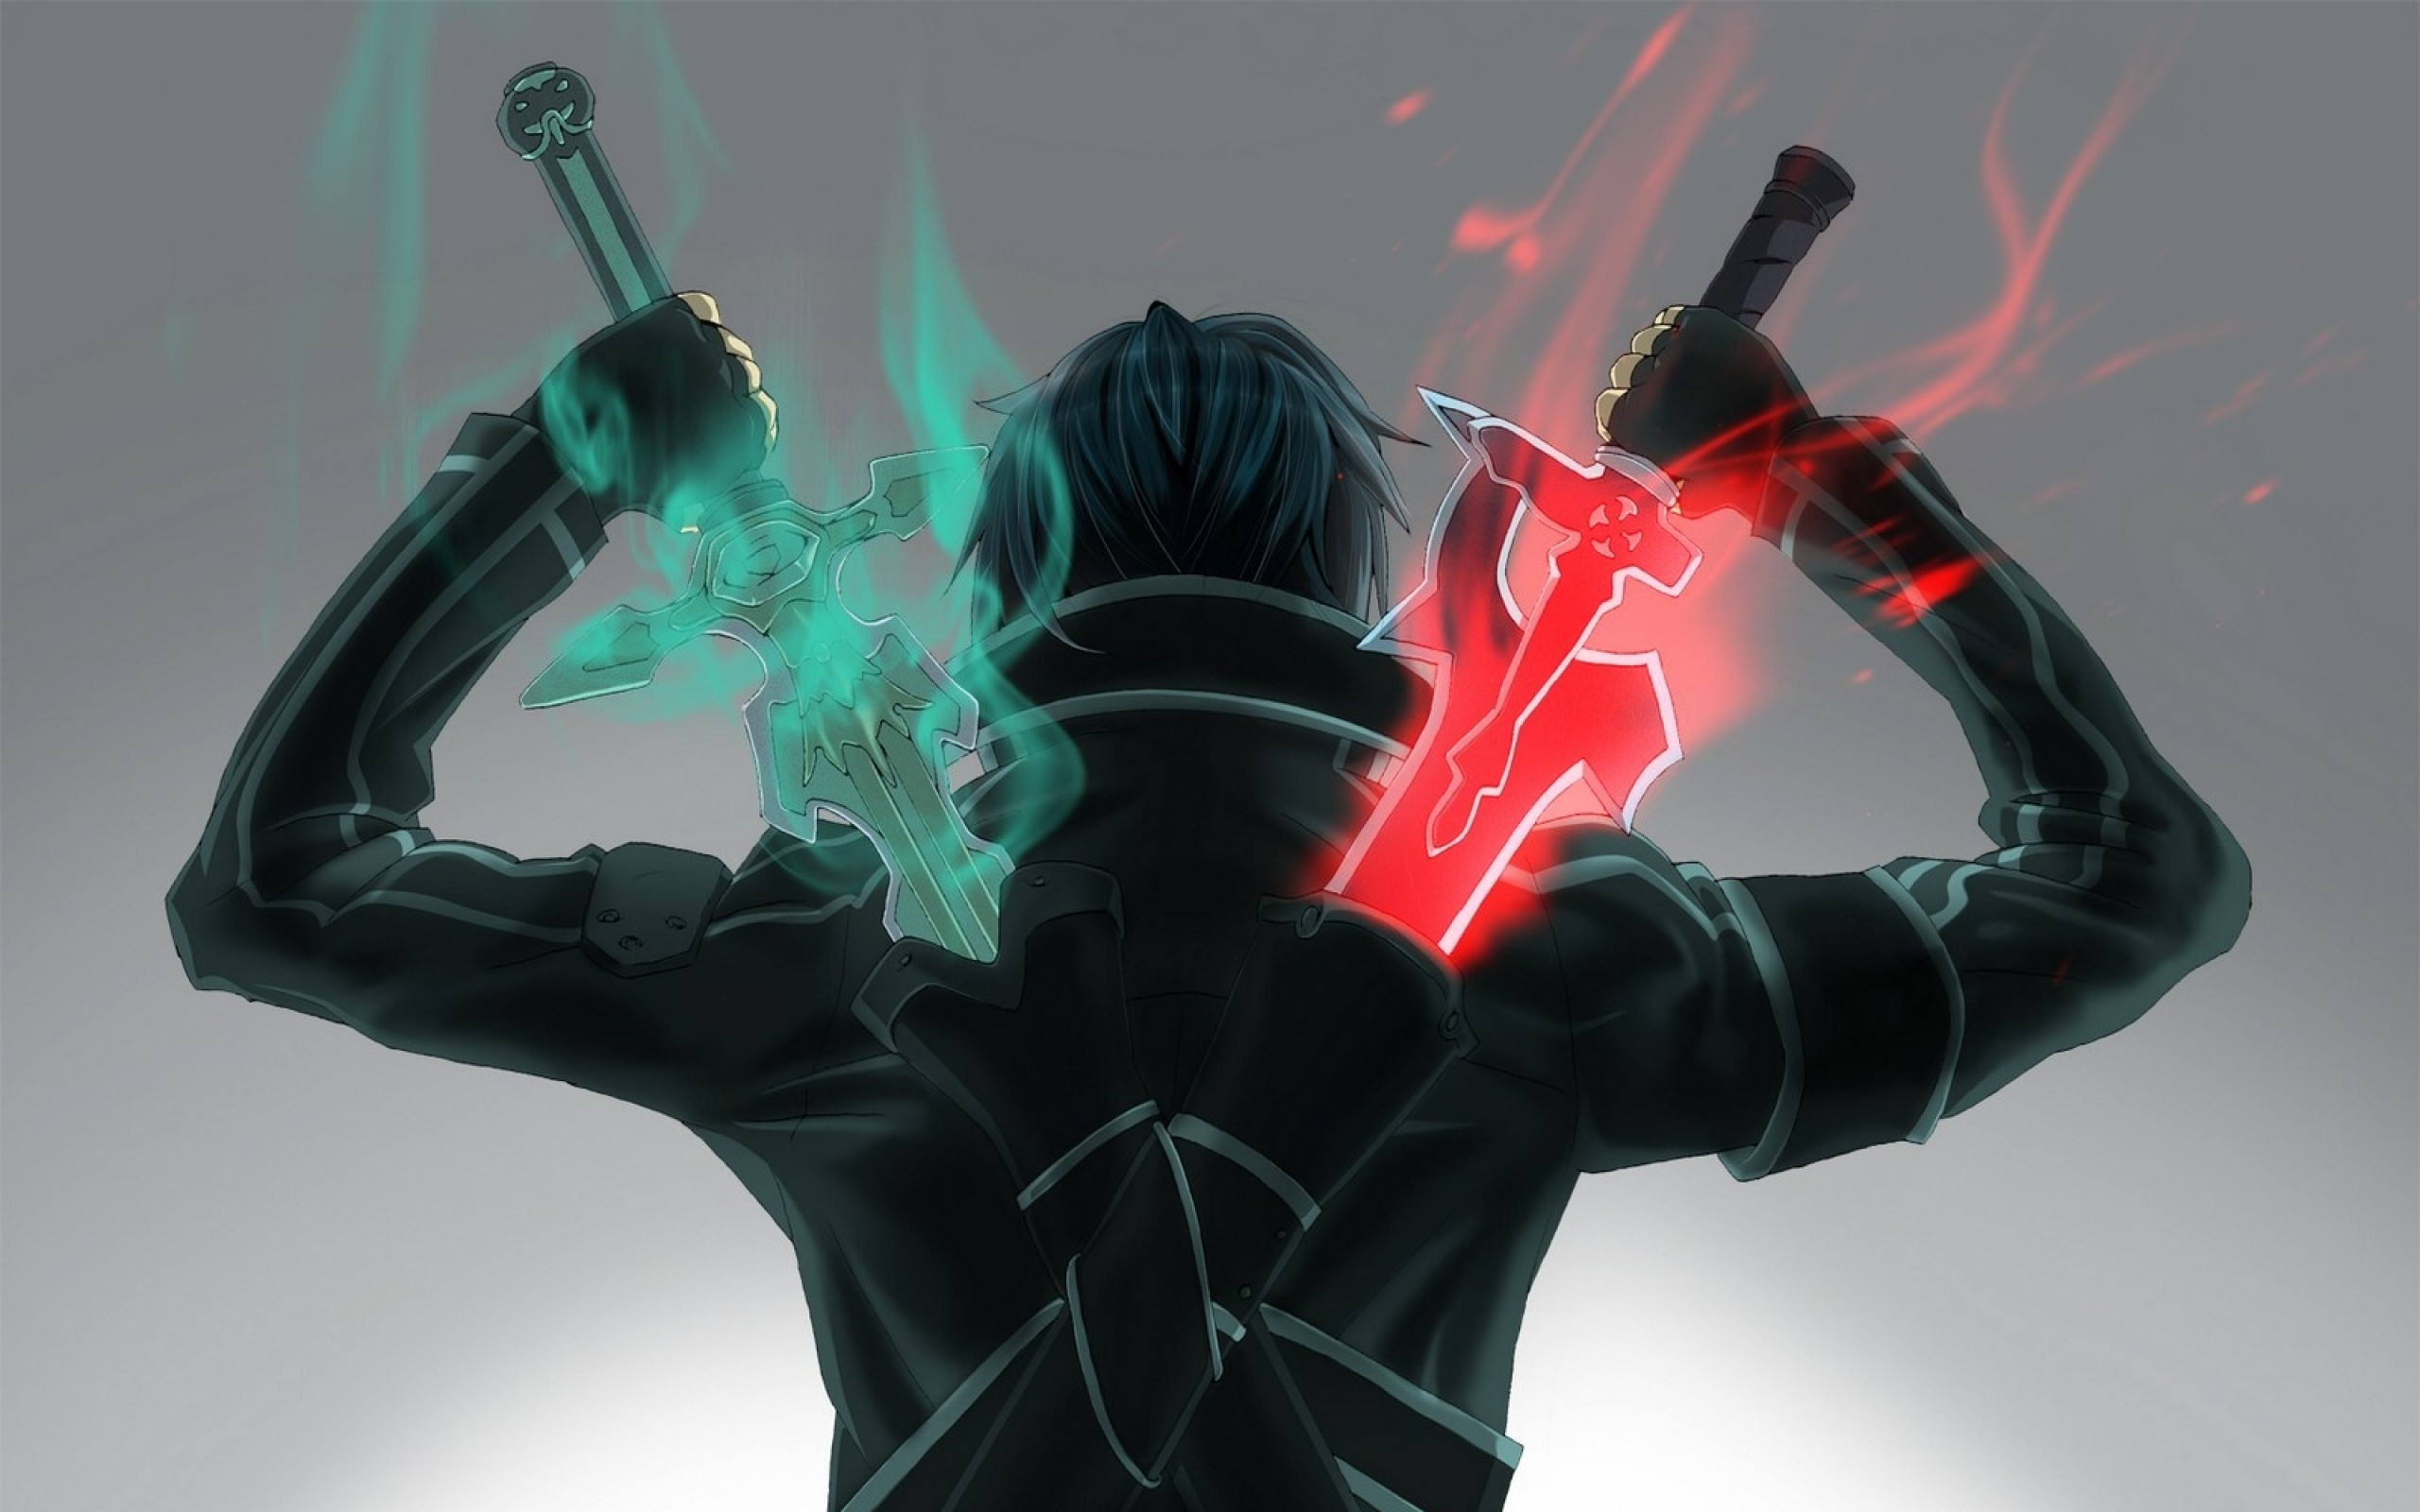 i got 3 sao backgrounds that im going to post if anyone wants them